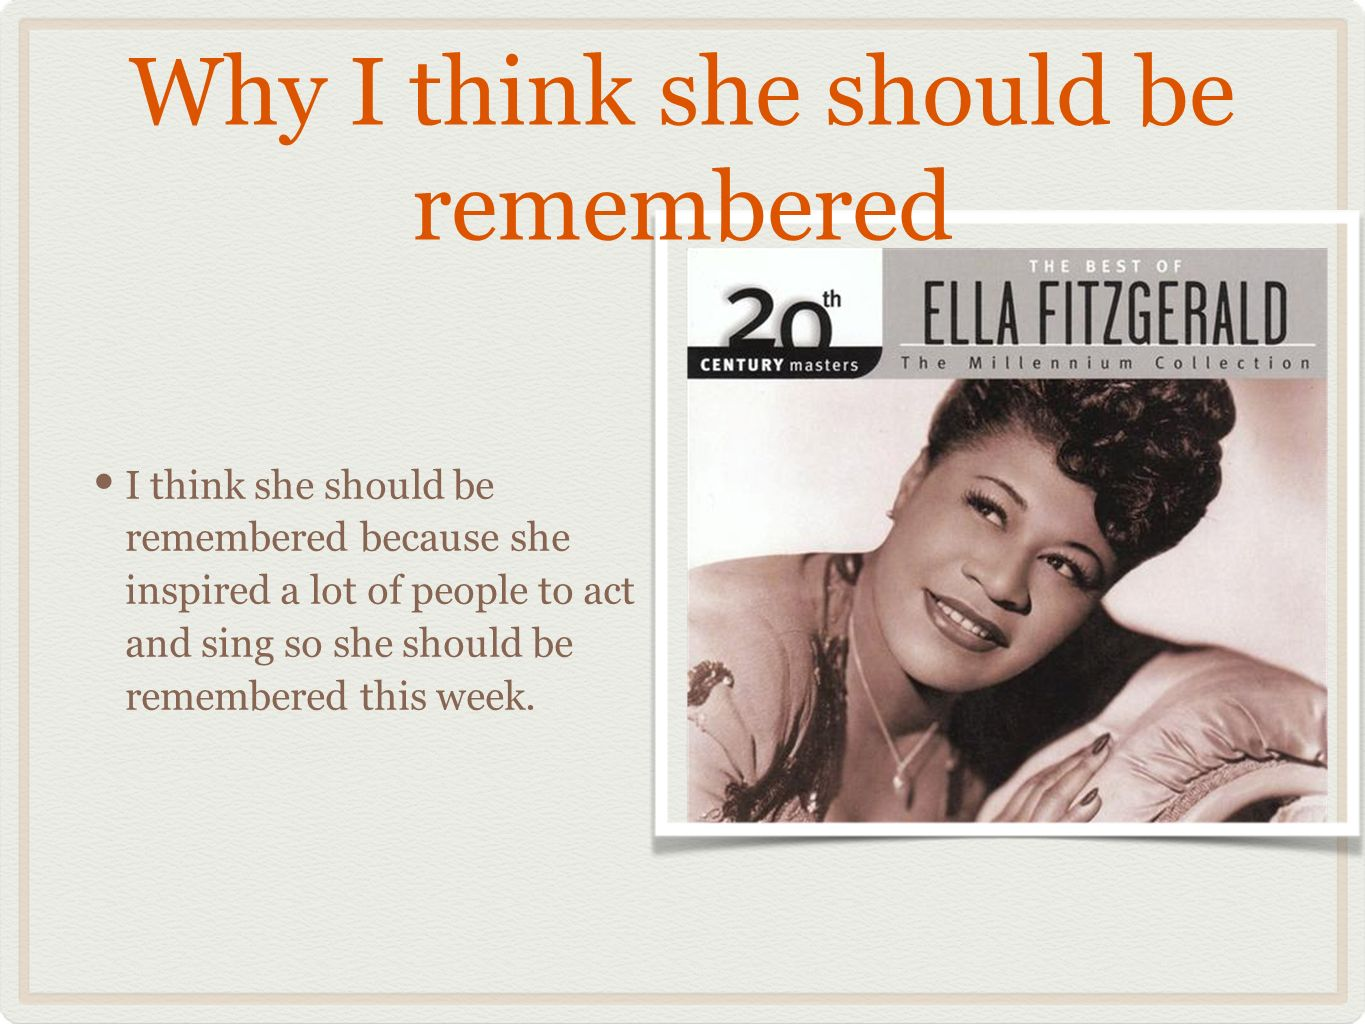 Why I think she should be remembered I think she should be remembered because she inspired a lot of people to act and sing so she should be remembered this week.